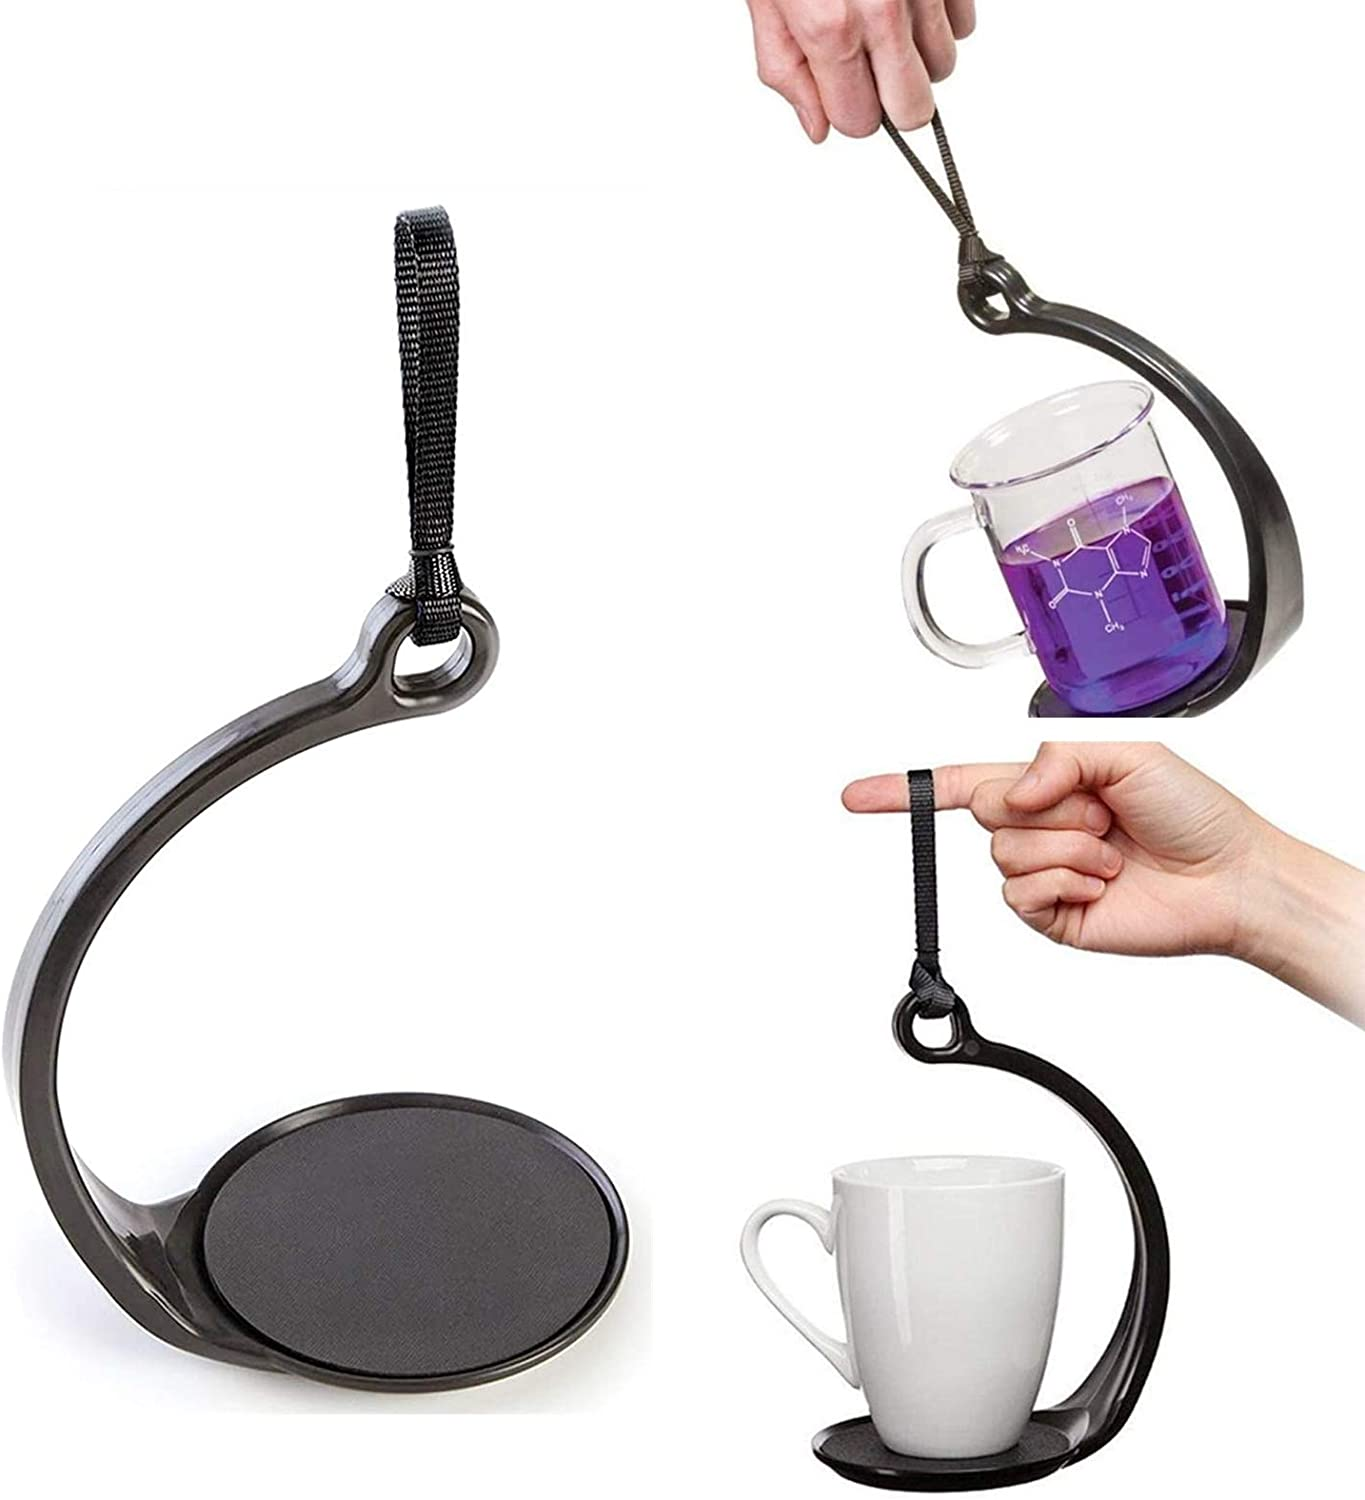 Spill Not Cup Carrier Anti-Spill No-Spill Mug Cup Holder for Hot Cold Drinks Tea Coffee Lovers